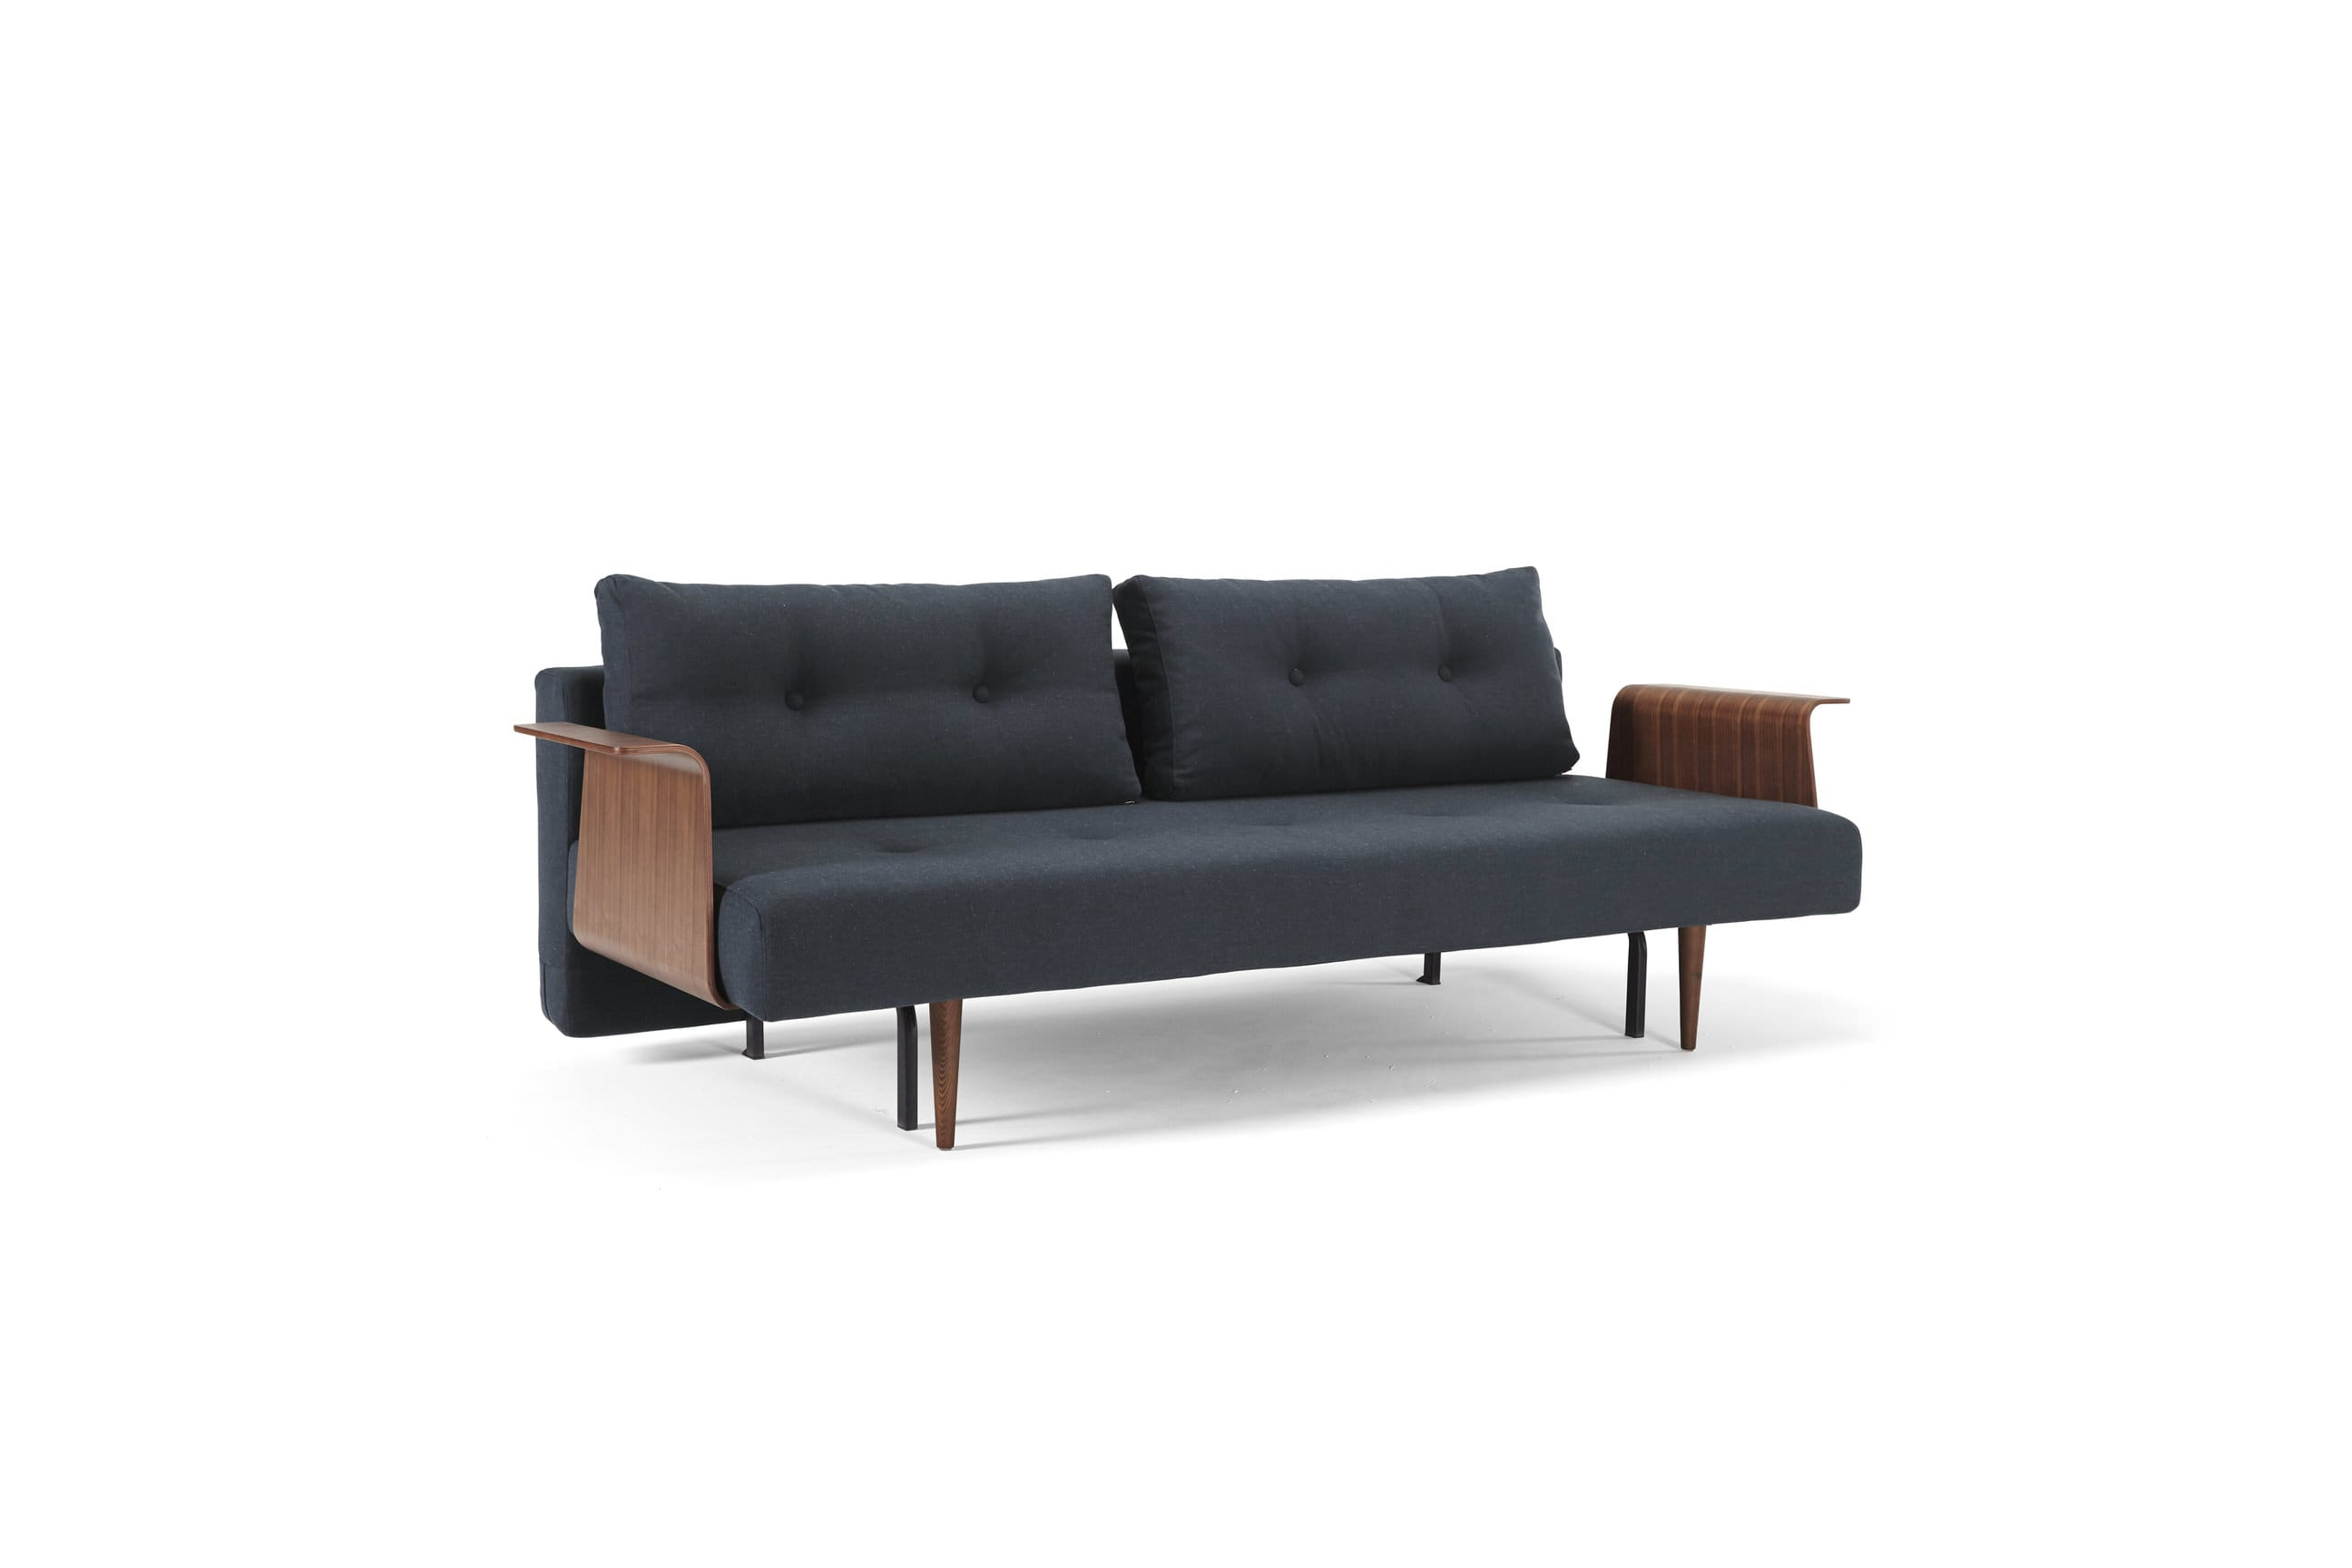 Recast Sofa Bed W/Walnut Arms (Full Size) Nist Blue By Innovation